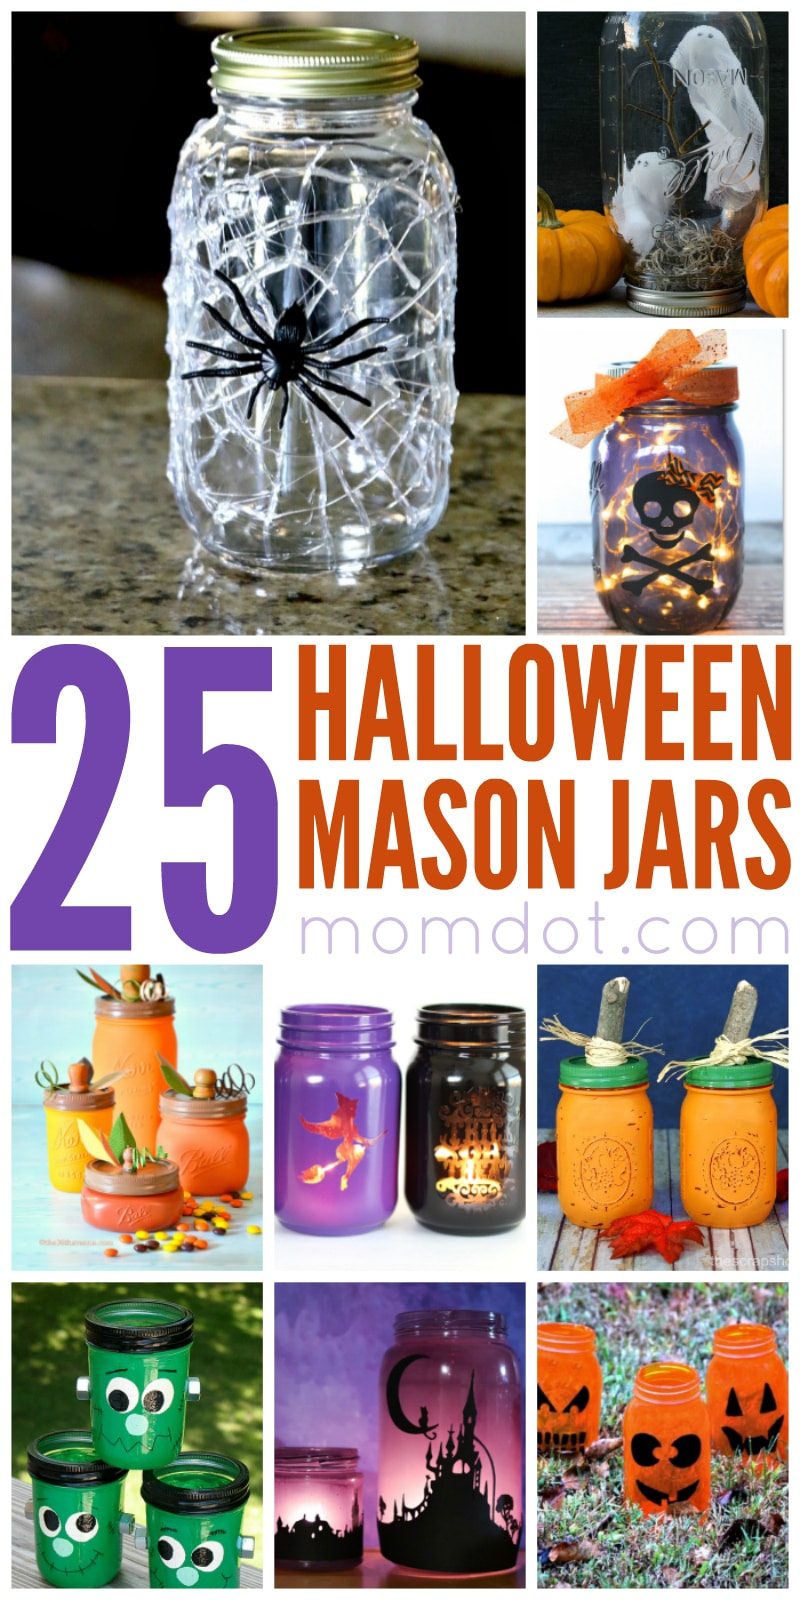 70 Halloween Mason jar craft ideas. Halloween party ideas. Halloween party decoration ideas. Mason jar lights for Halloween party. Halloween lights ideas for home décor. Recycled Mason jar craft ideas on Halloween. Halloween outdoor lights ideas. Halloween decorative Mason jar. Halloween Mason jar lights. Decorative canning jar for Halloween. Best Mason jar craft ideas for Halloween.